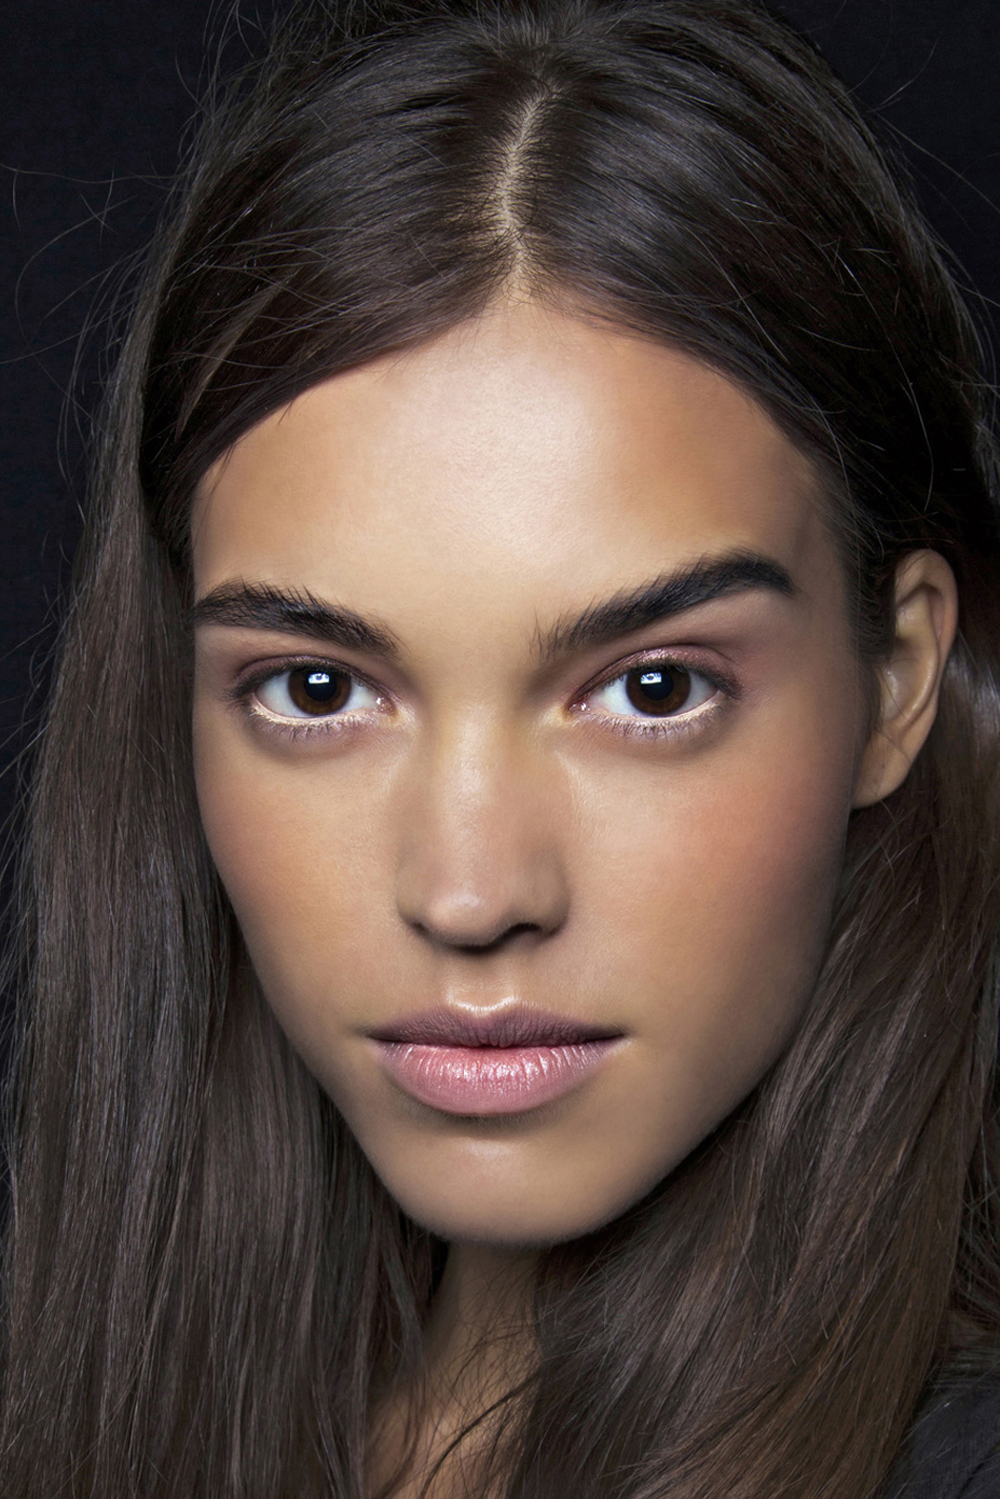 No Makeup Makeup: The Ultimate Guide To Getting It Right